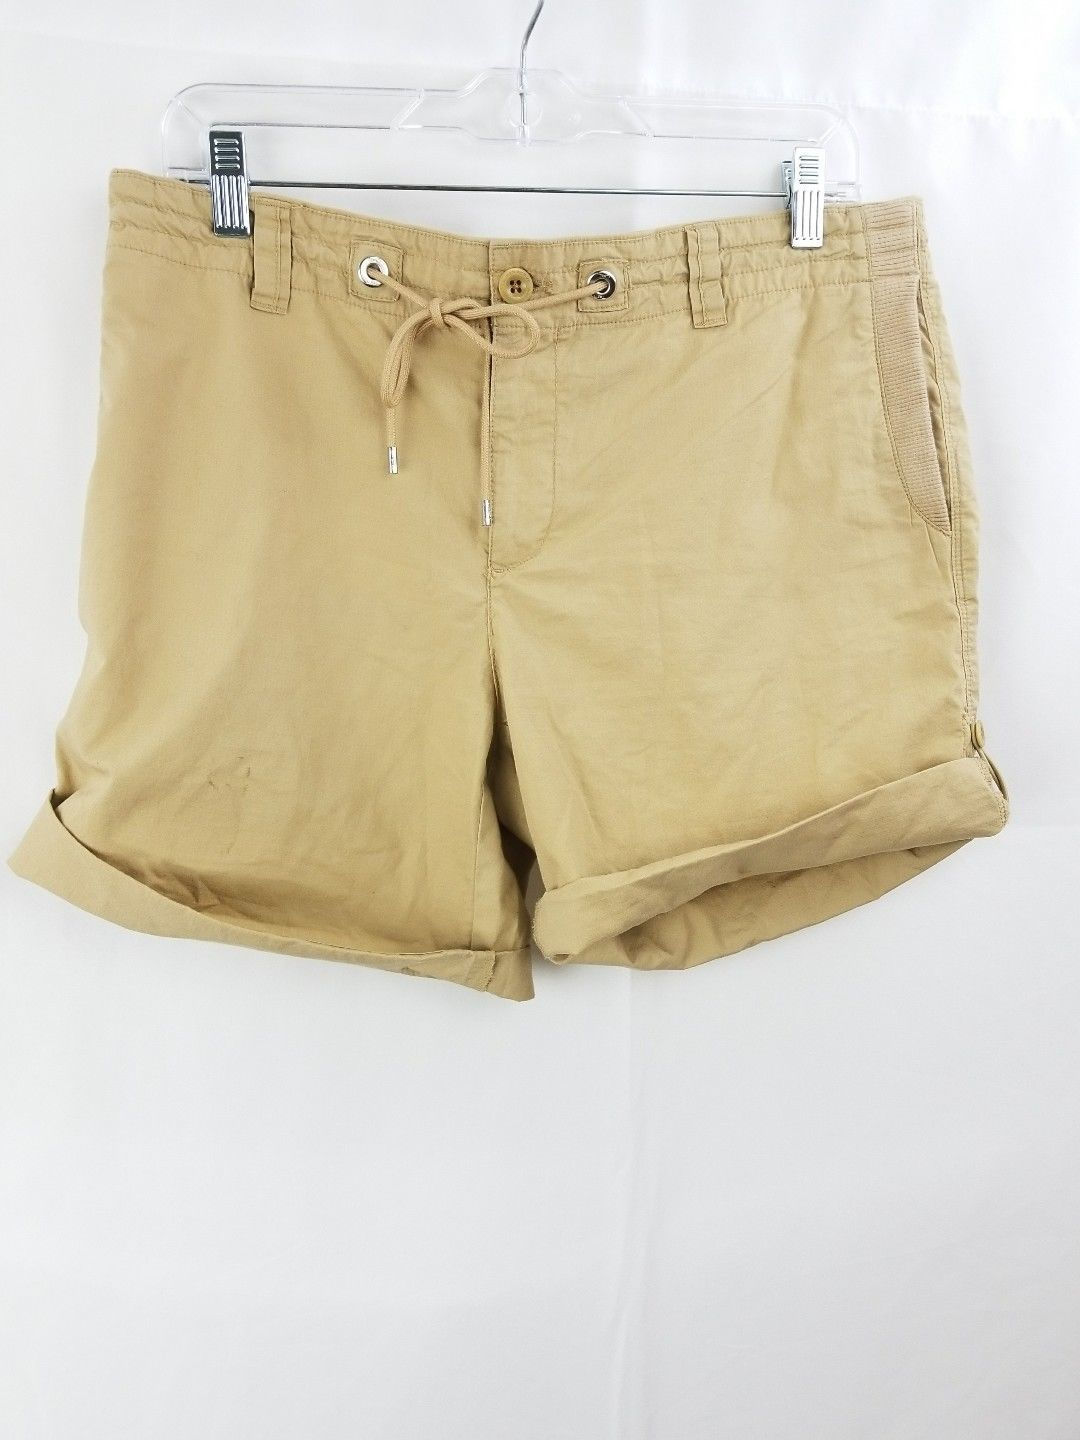 Womens Lauren active ralph lauren bermuda shorts sz 8 khaki stretch - $9.99